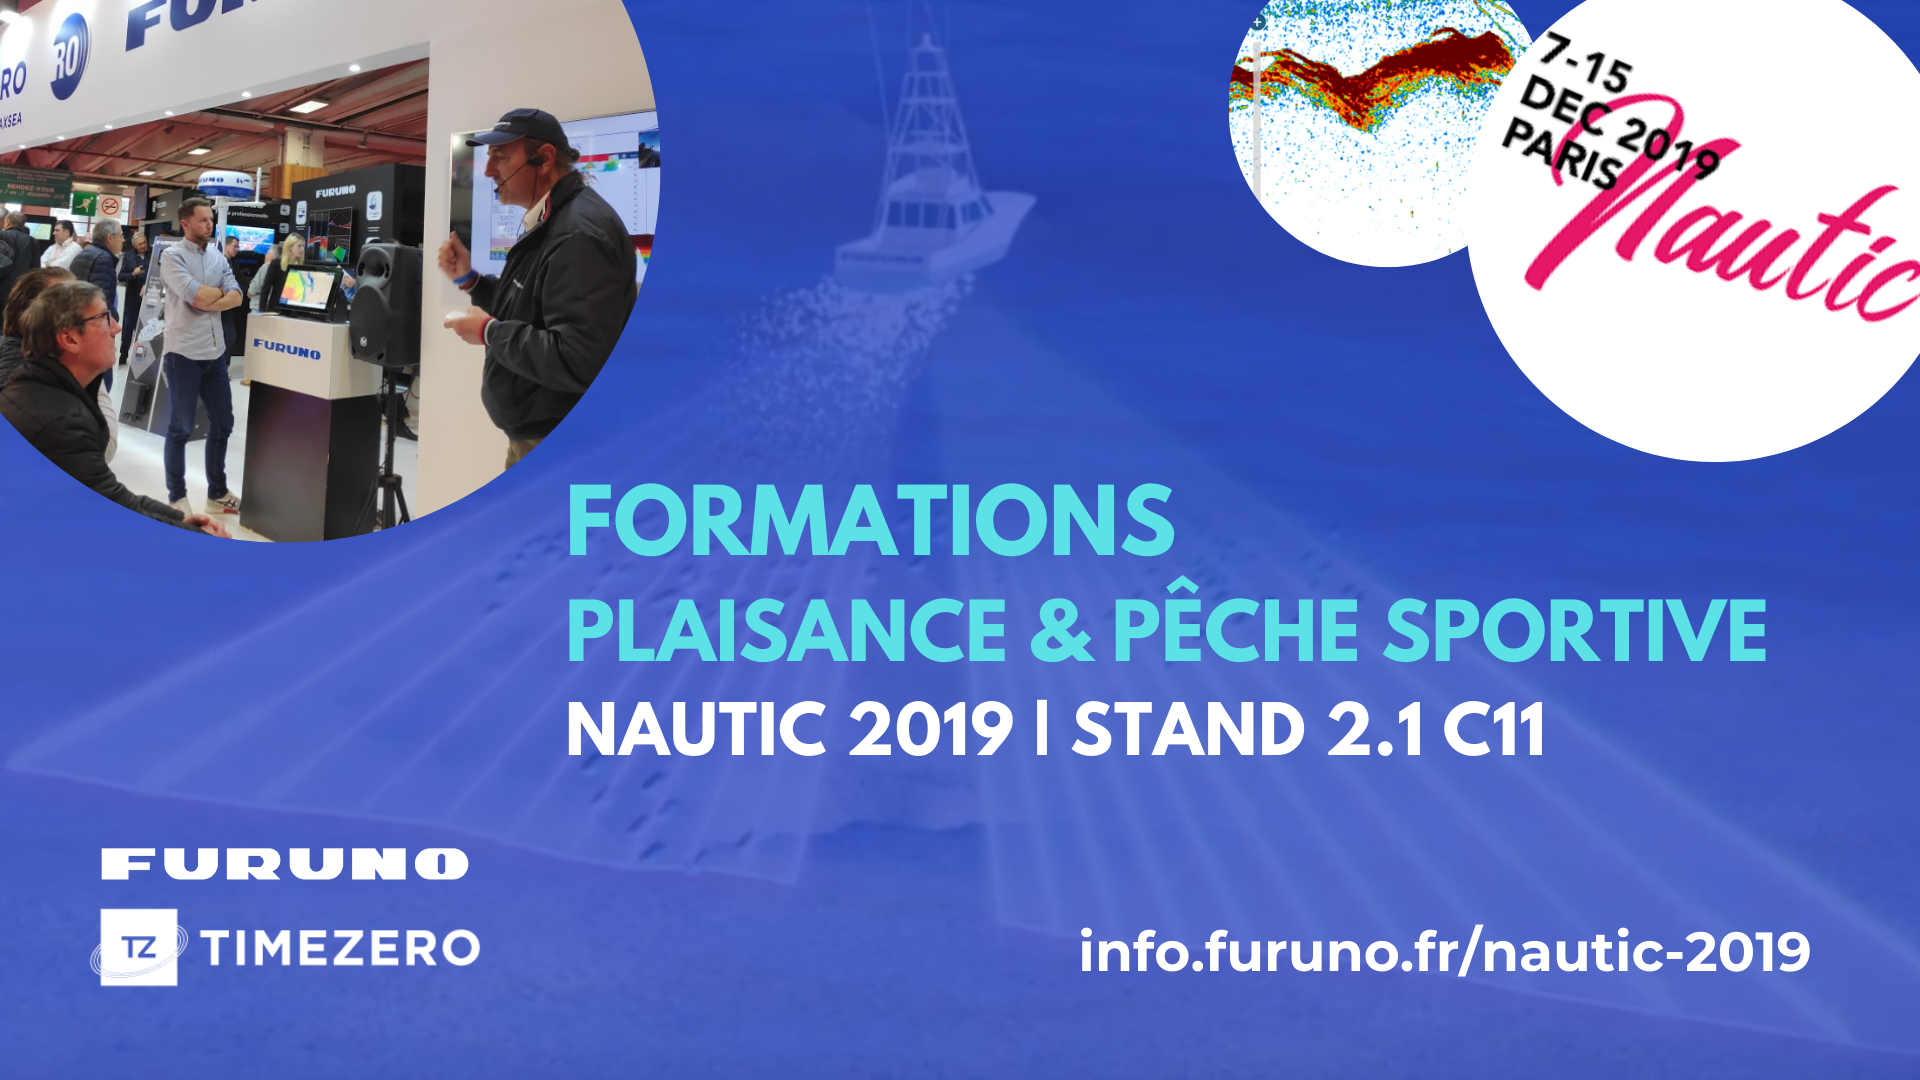 FORMATIONS NAUTIC 2019 - FB EVENT